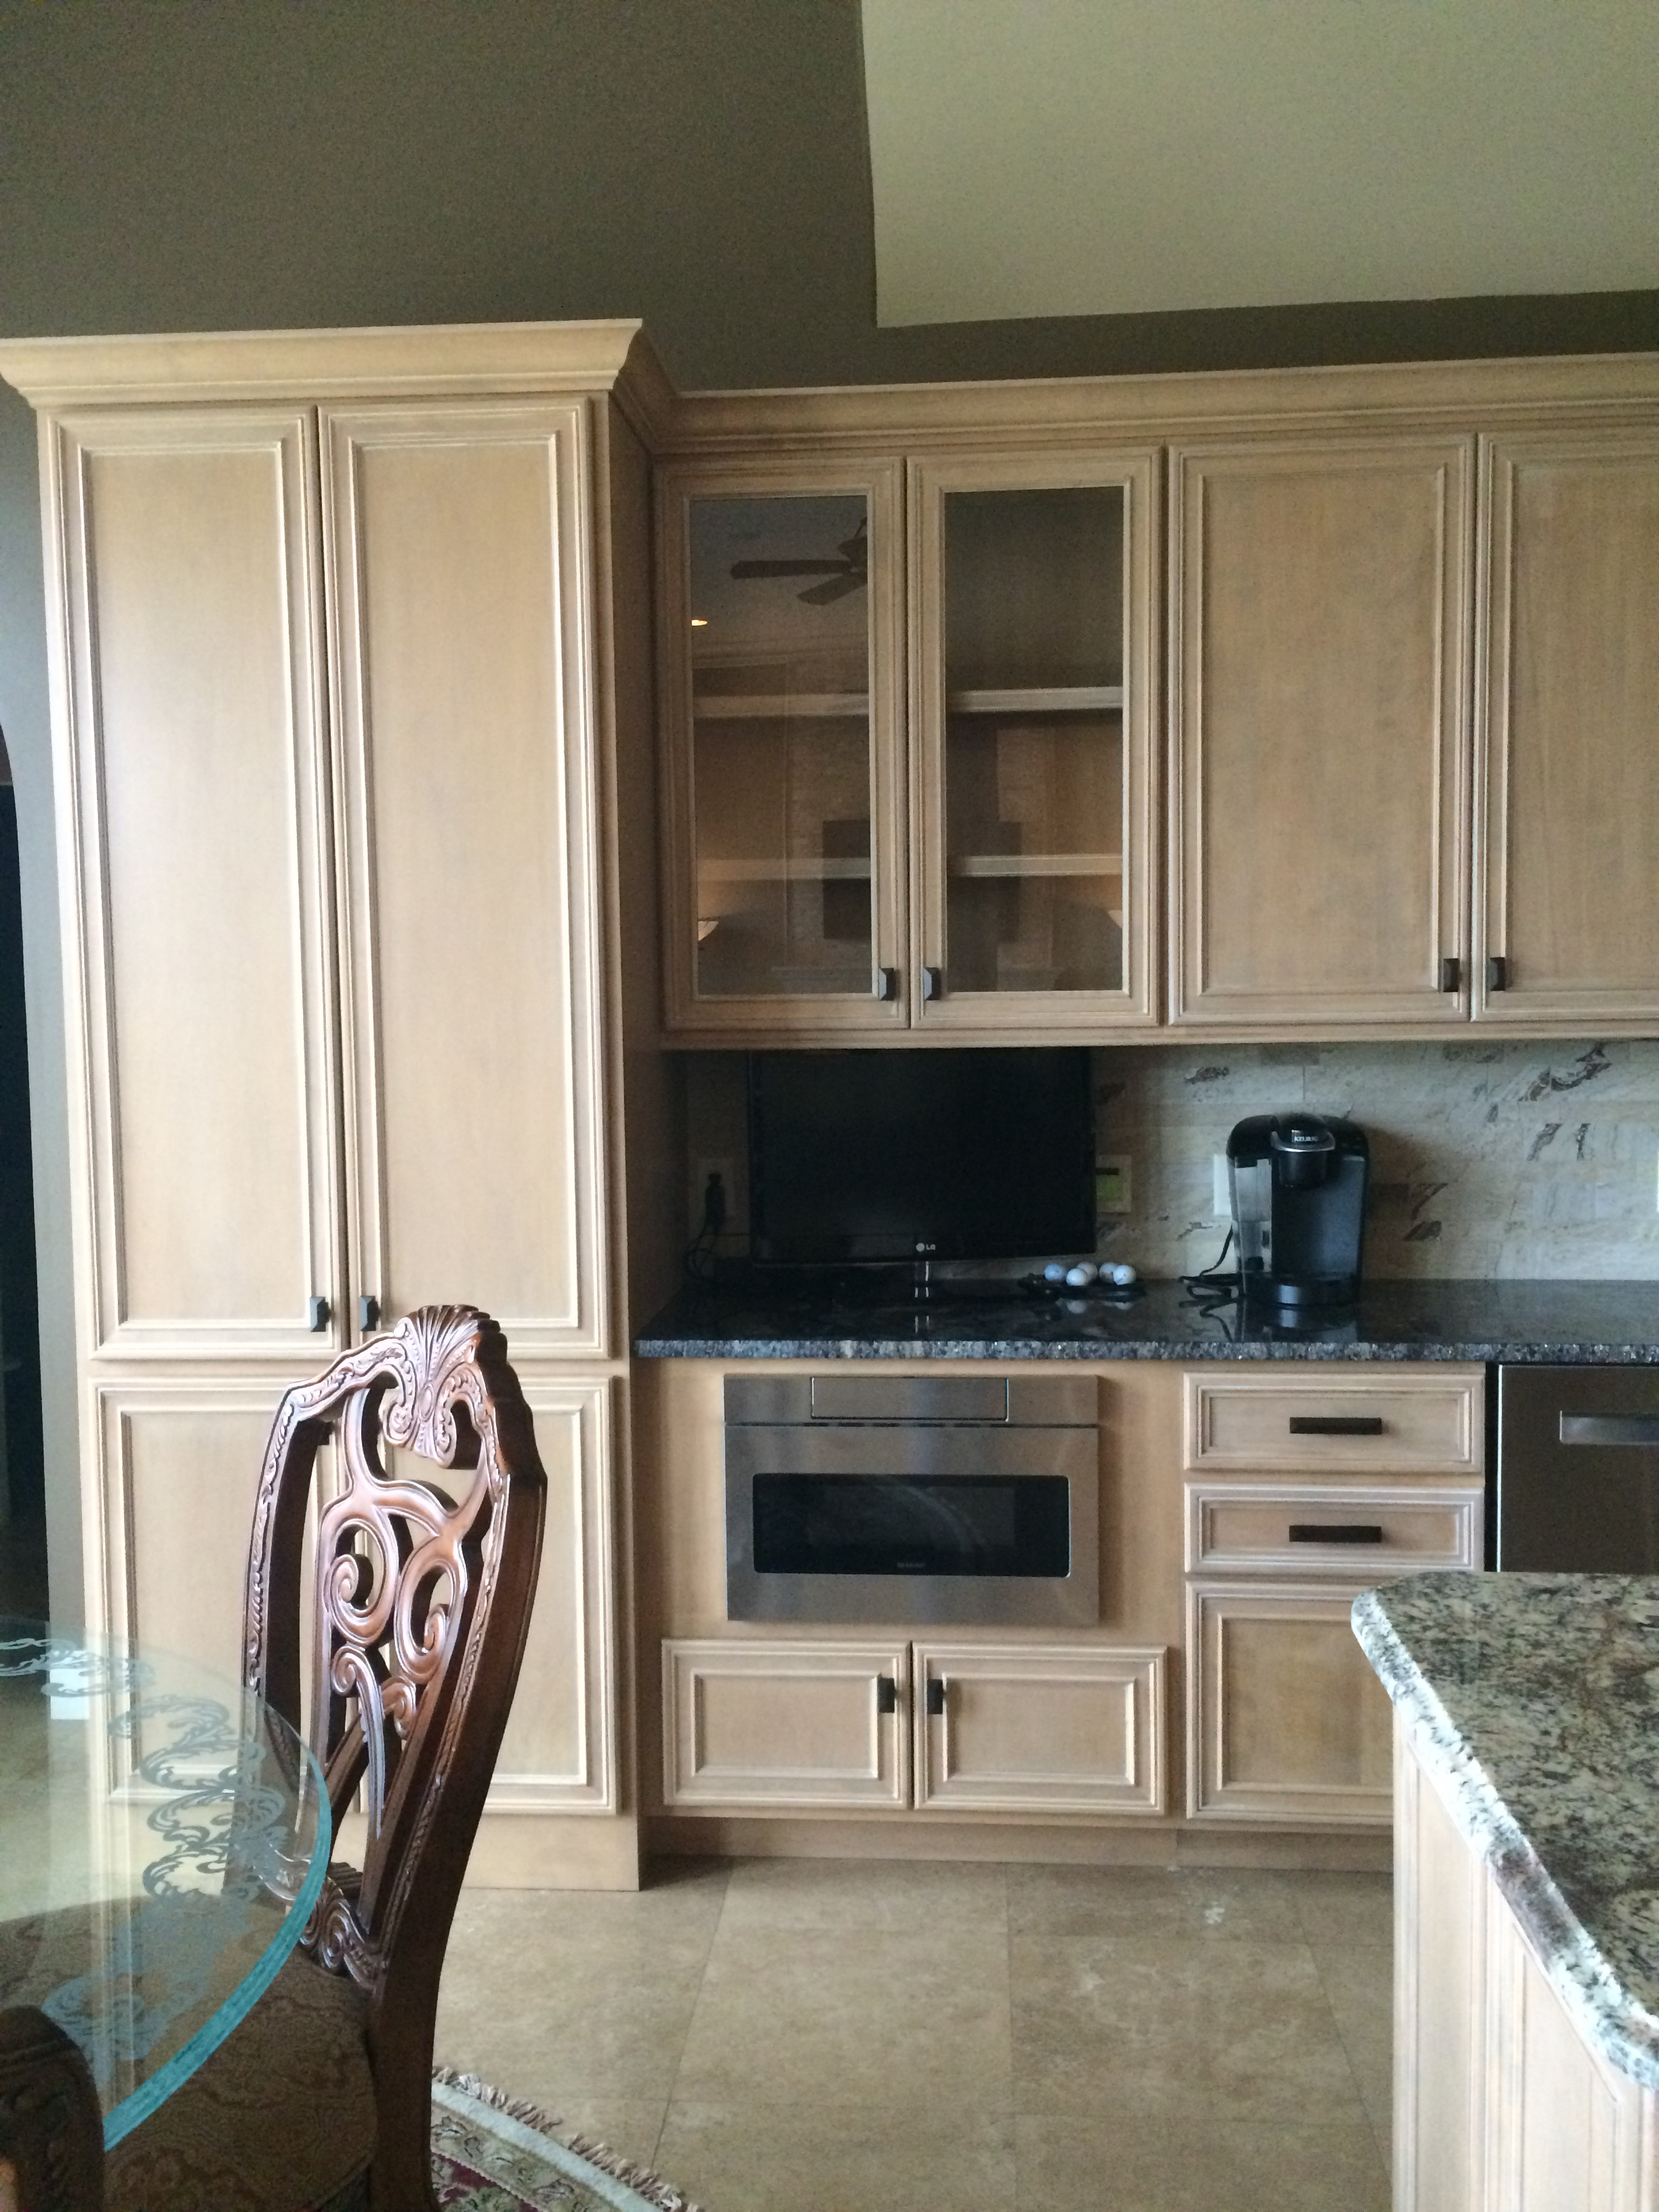 Detailed cabinetry and tile